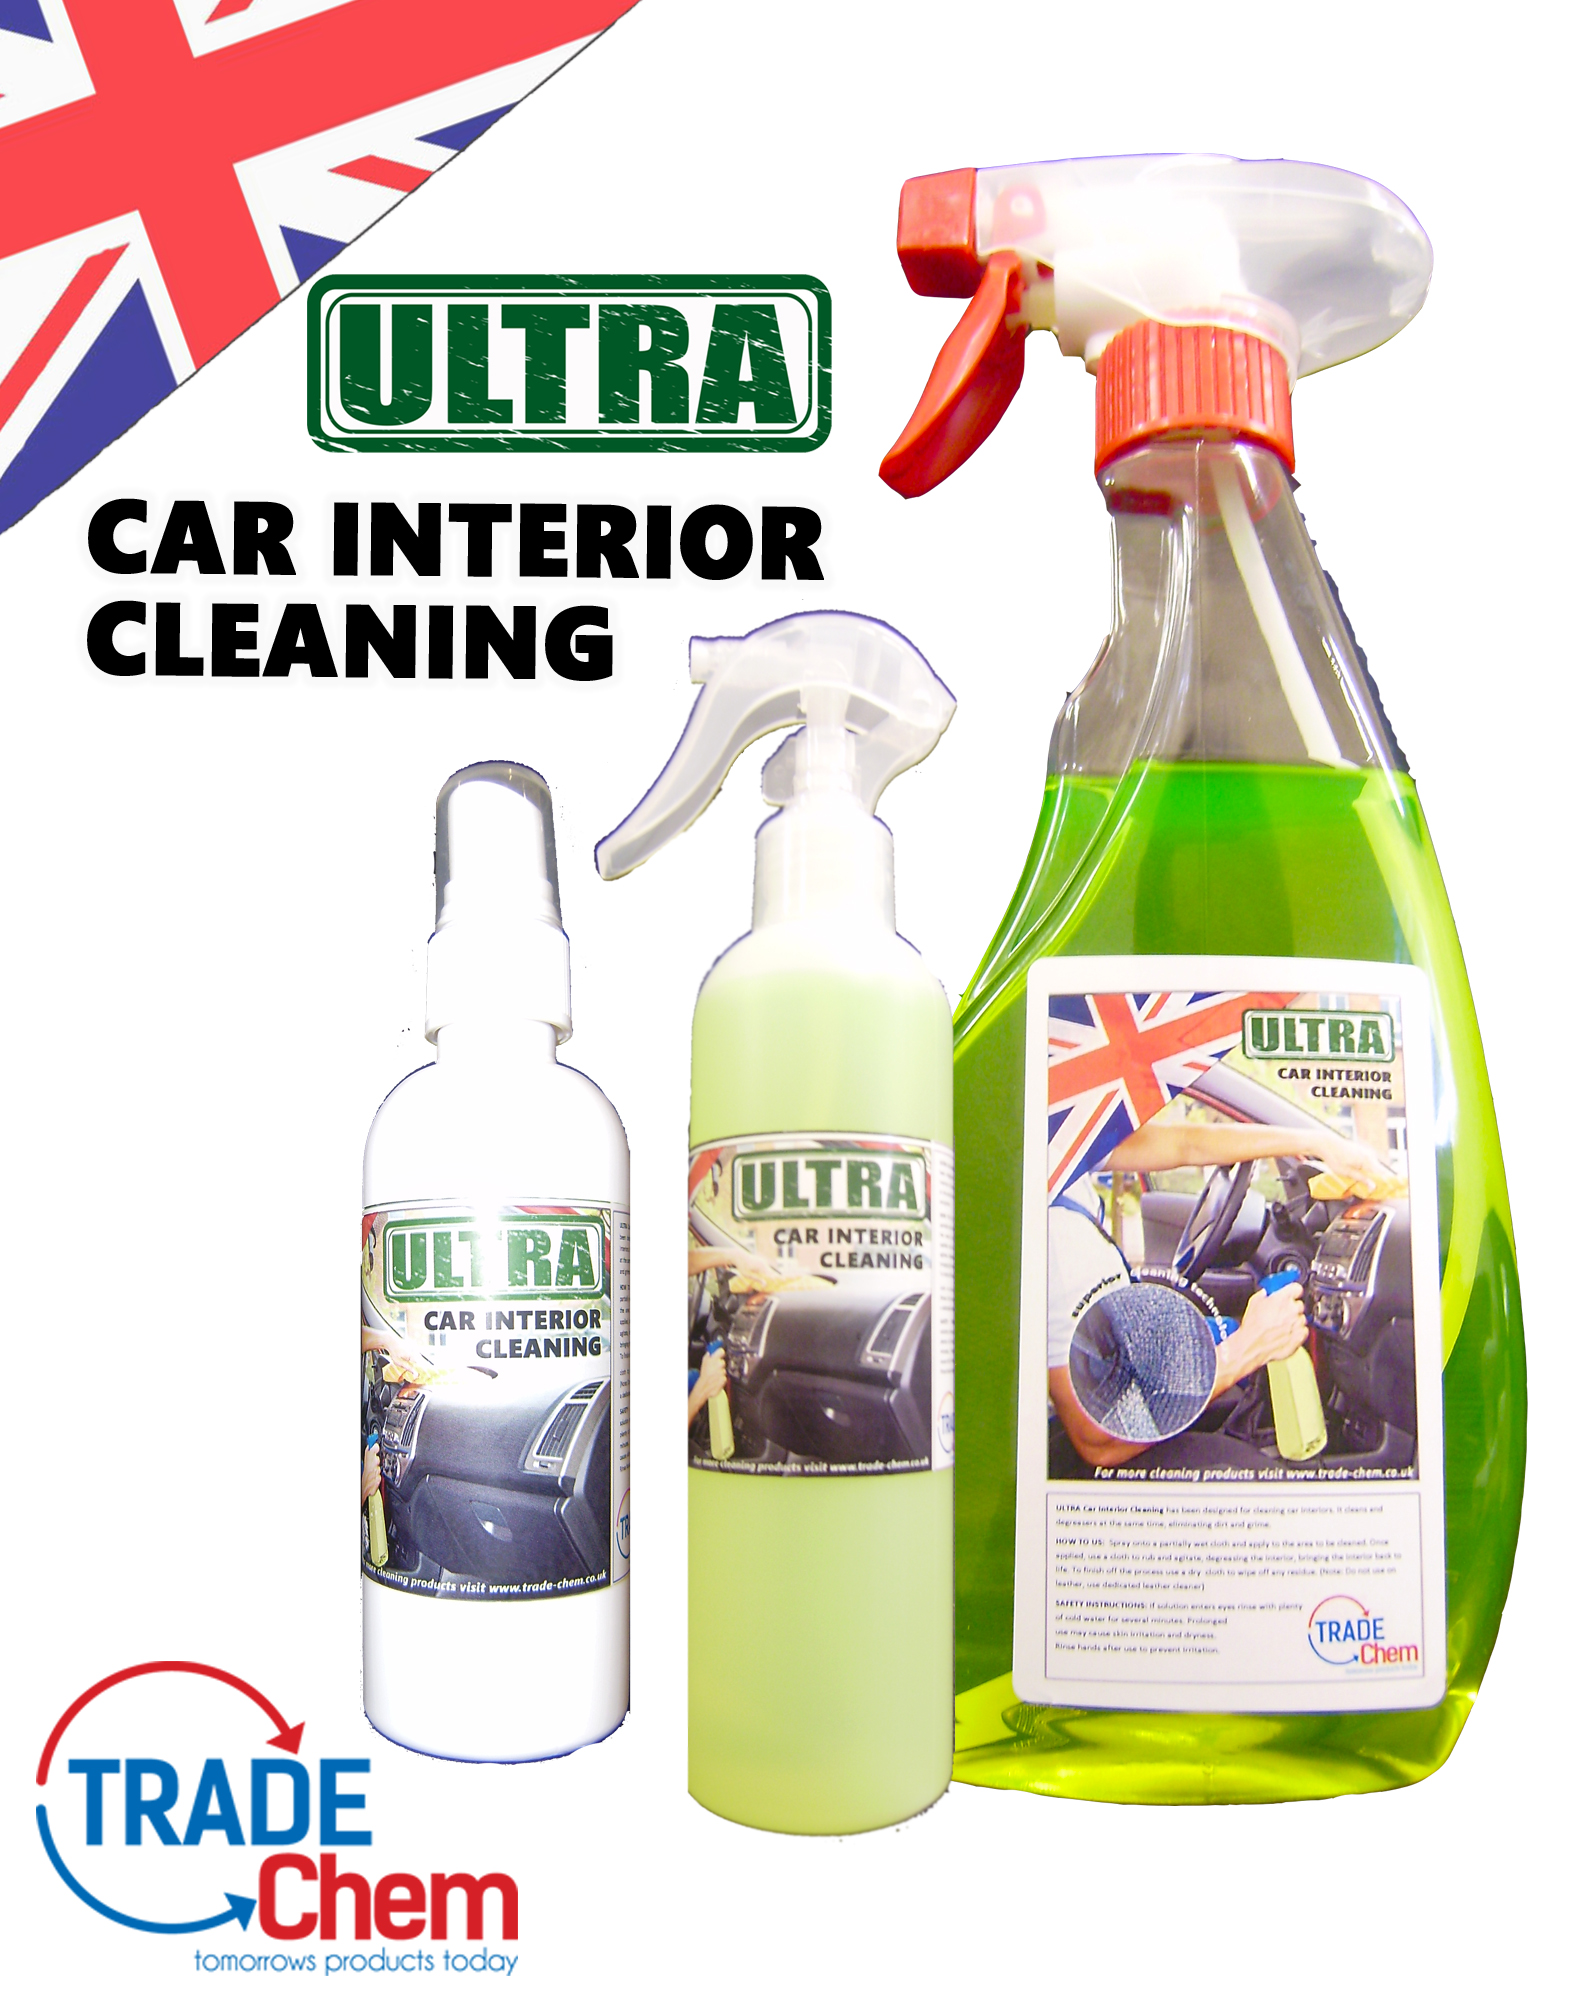 ULTRA Car Interior Cleaner and Degreaser